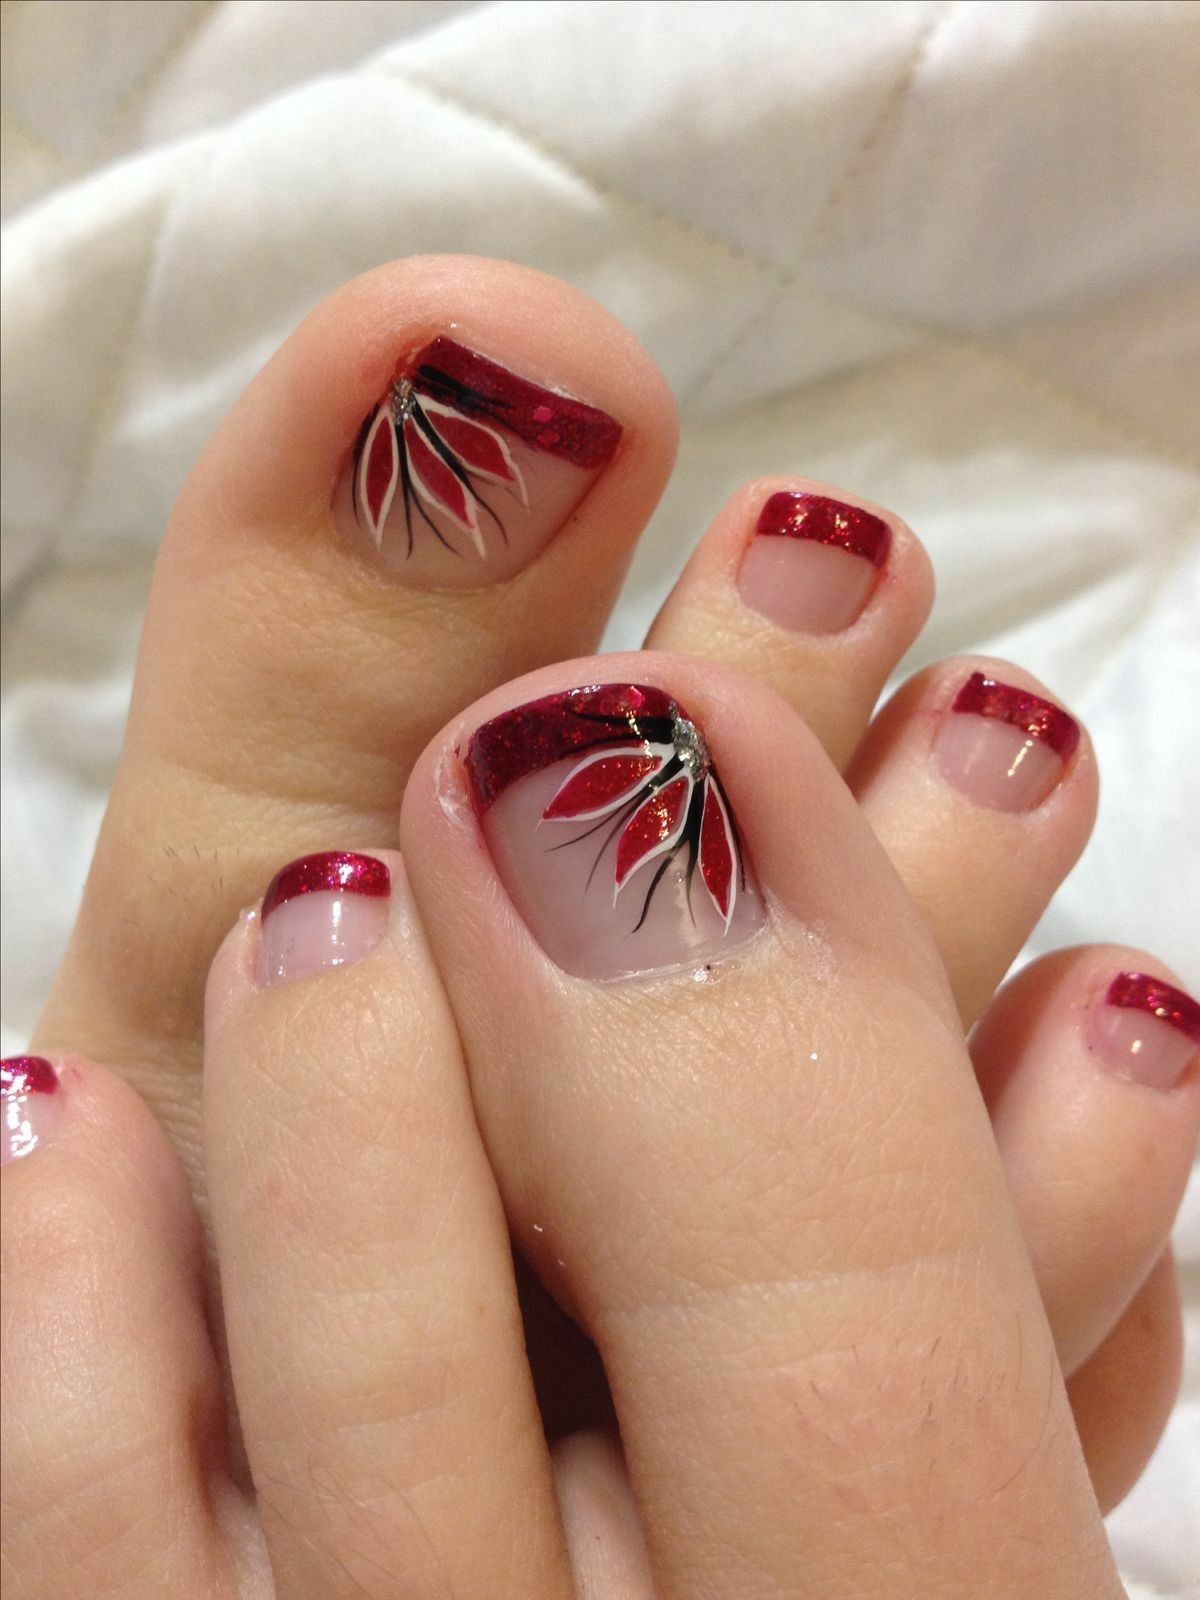 Glitter French Tip Pedicure (Christmas Nails Toes) - Pin By Kristina Sartori On Nailed It Pinterest Pedicures